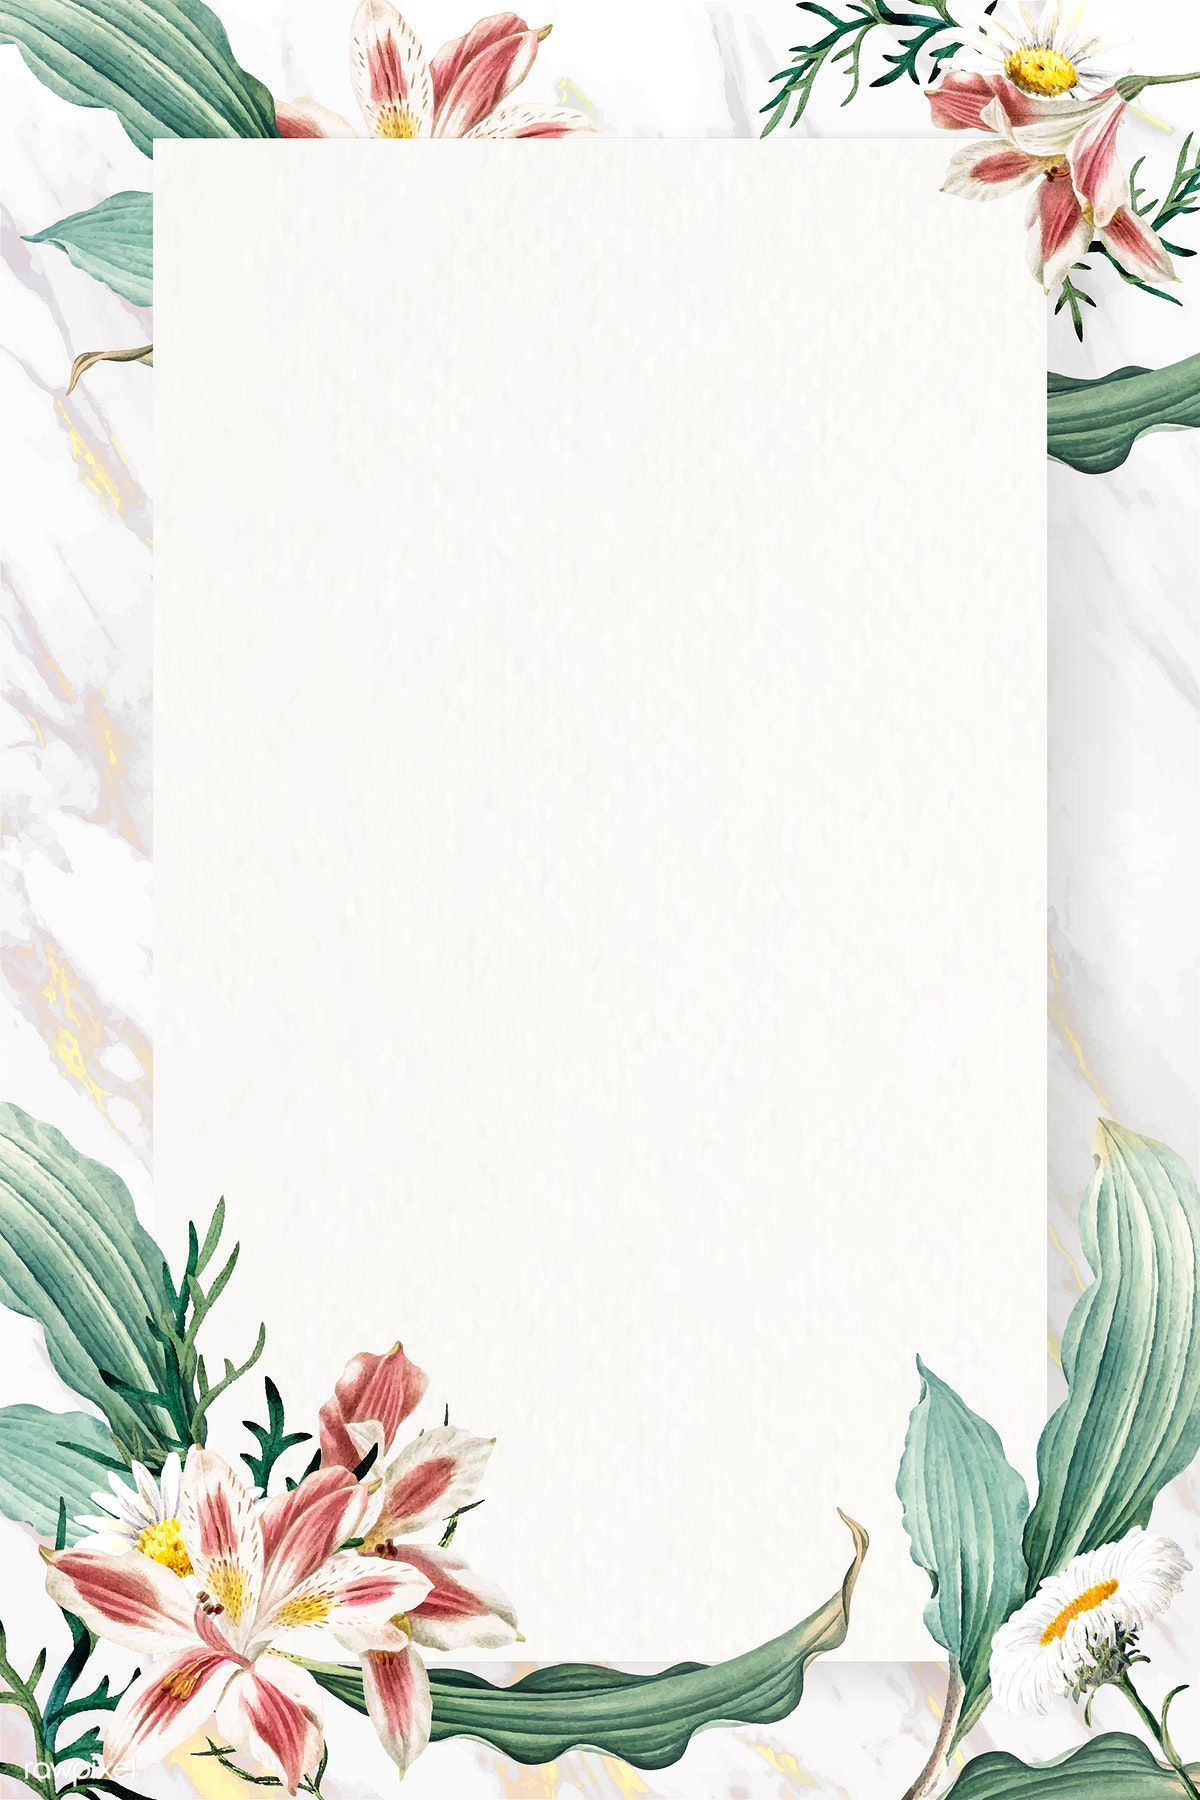 Download premium vector of Blank floral rectangle frame